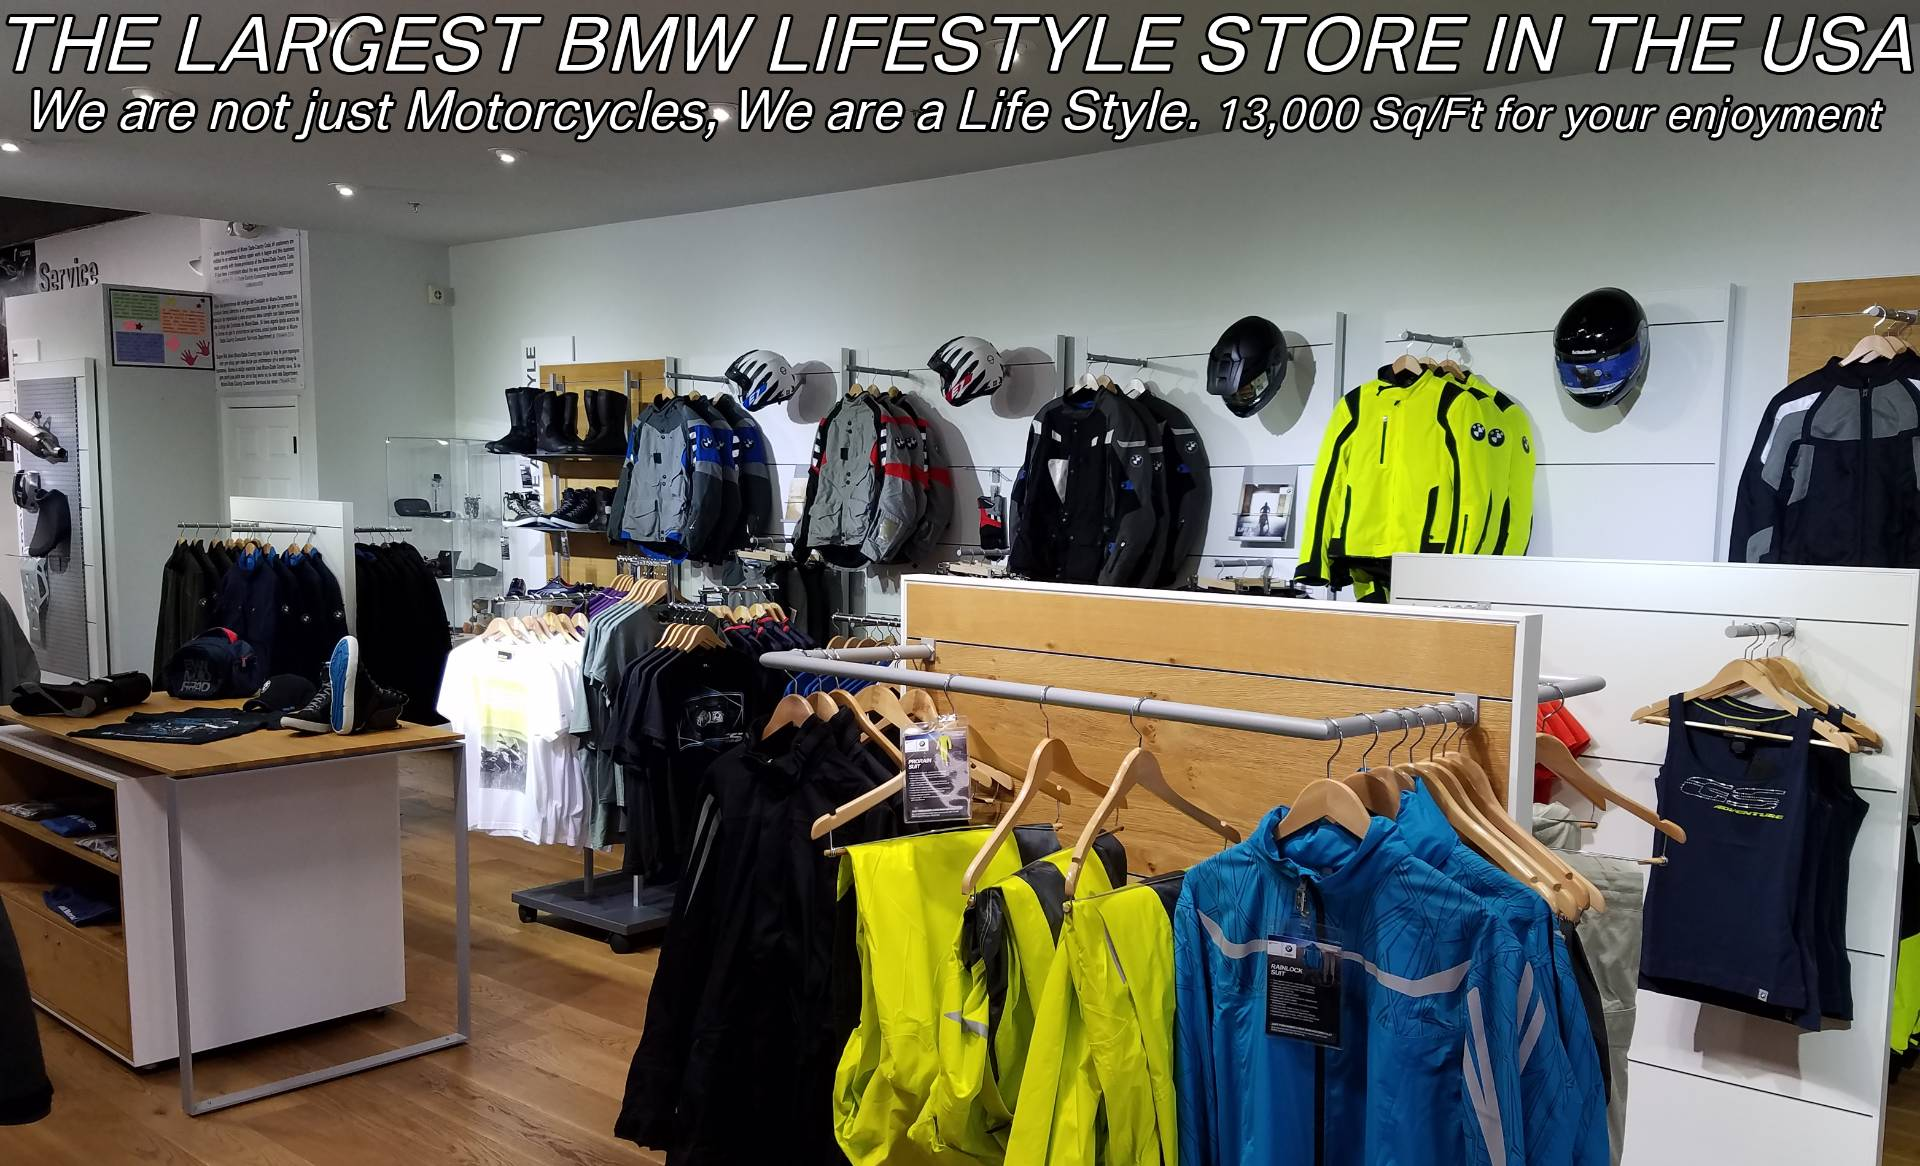 Used 2015 BMW R 1200 GSA for sale, BMW R 1200GSA for sale, BMW Motorcycle R1200GSA, used BMW Adventure, Dual, GS, BMW. BMW Motorcycles of Miami, Motorcycles of Miami, Motorcycles Miami, New Motorcycles, Used Motorcycles, pre-owned. #BMWMotorcyclesOfMiami #MotorcyclesOfMiami. - Photo 59